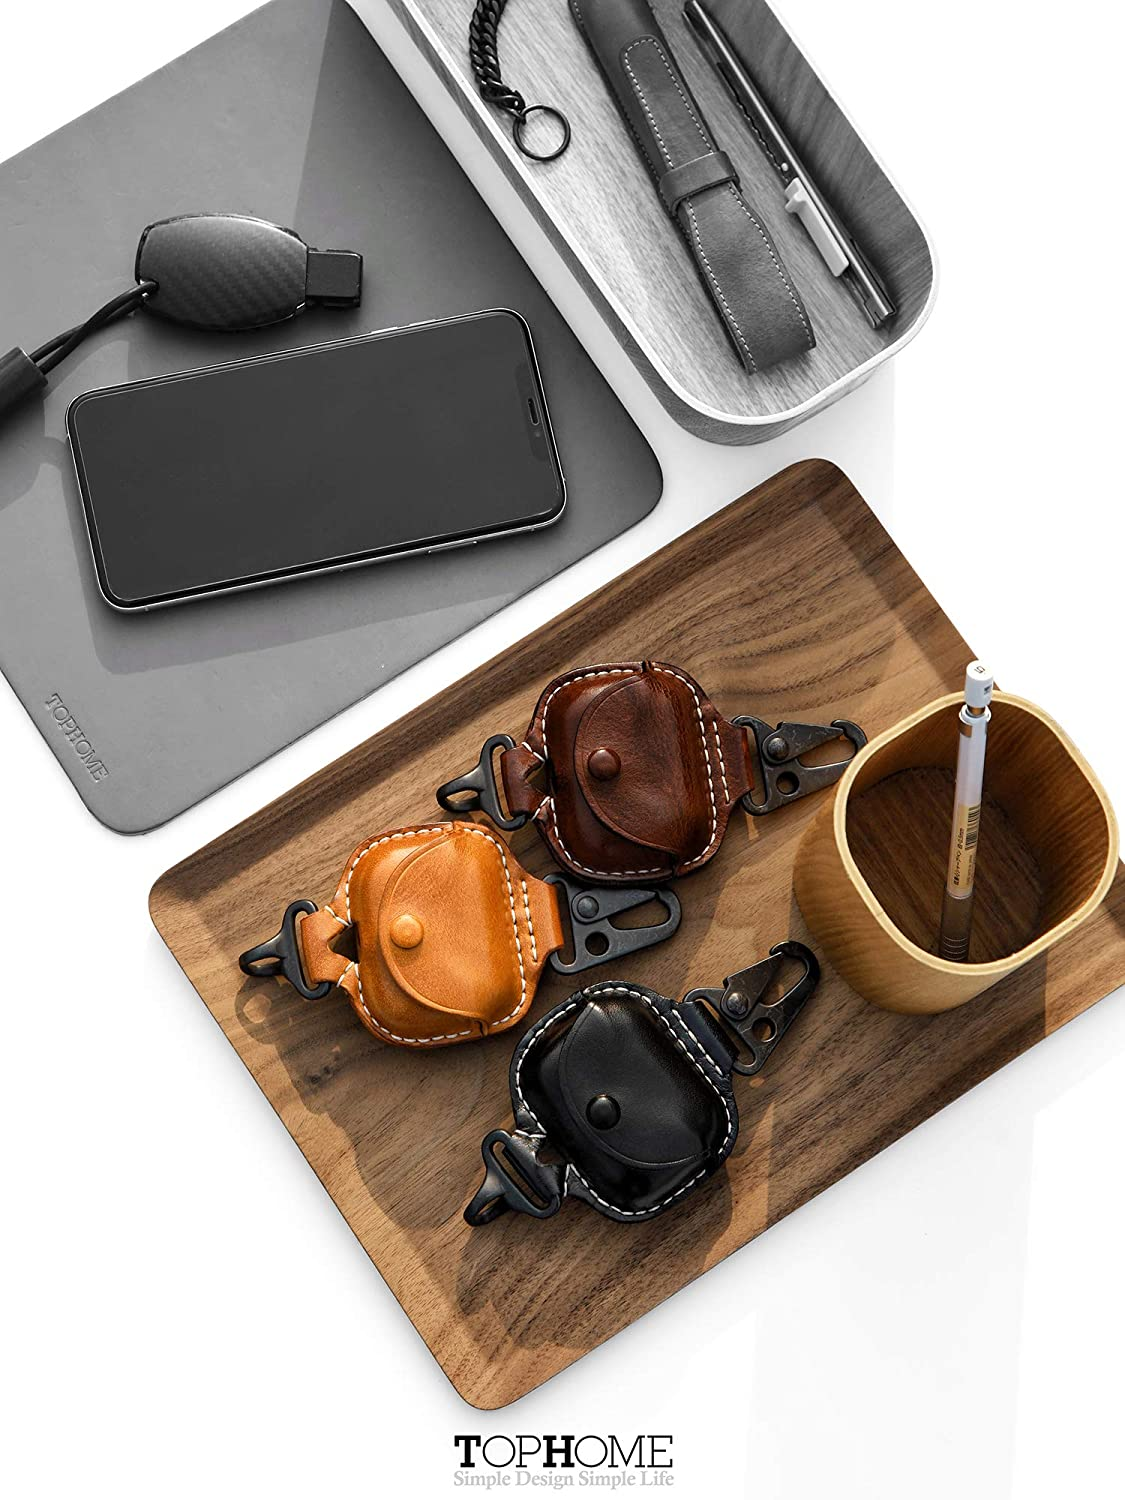 Yellow Brown,1 Piece TOPHOME AirPods Pro Case Leather Genuine Premium Leather Cover for AirPods Pro Case with Fine Copper Carabiner//Earbuds Accessories